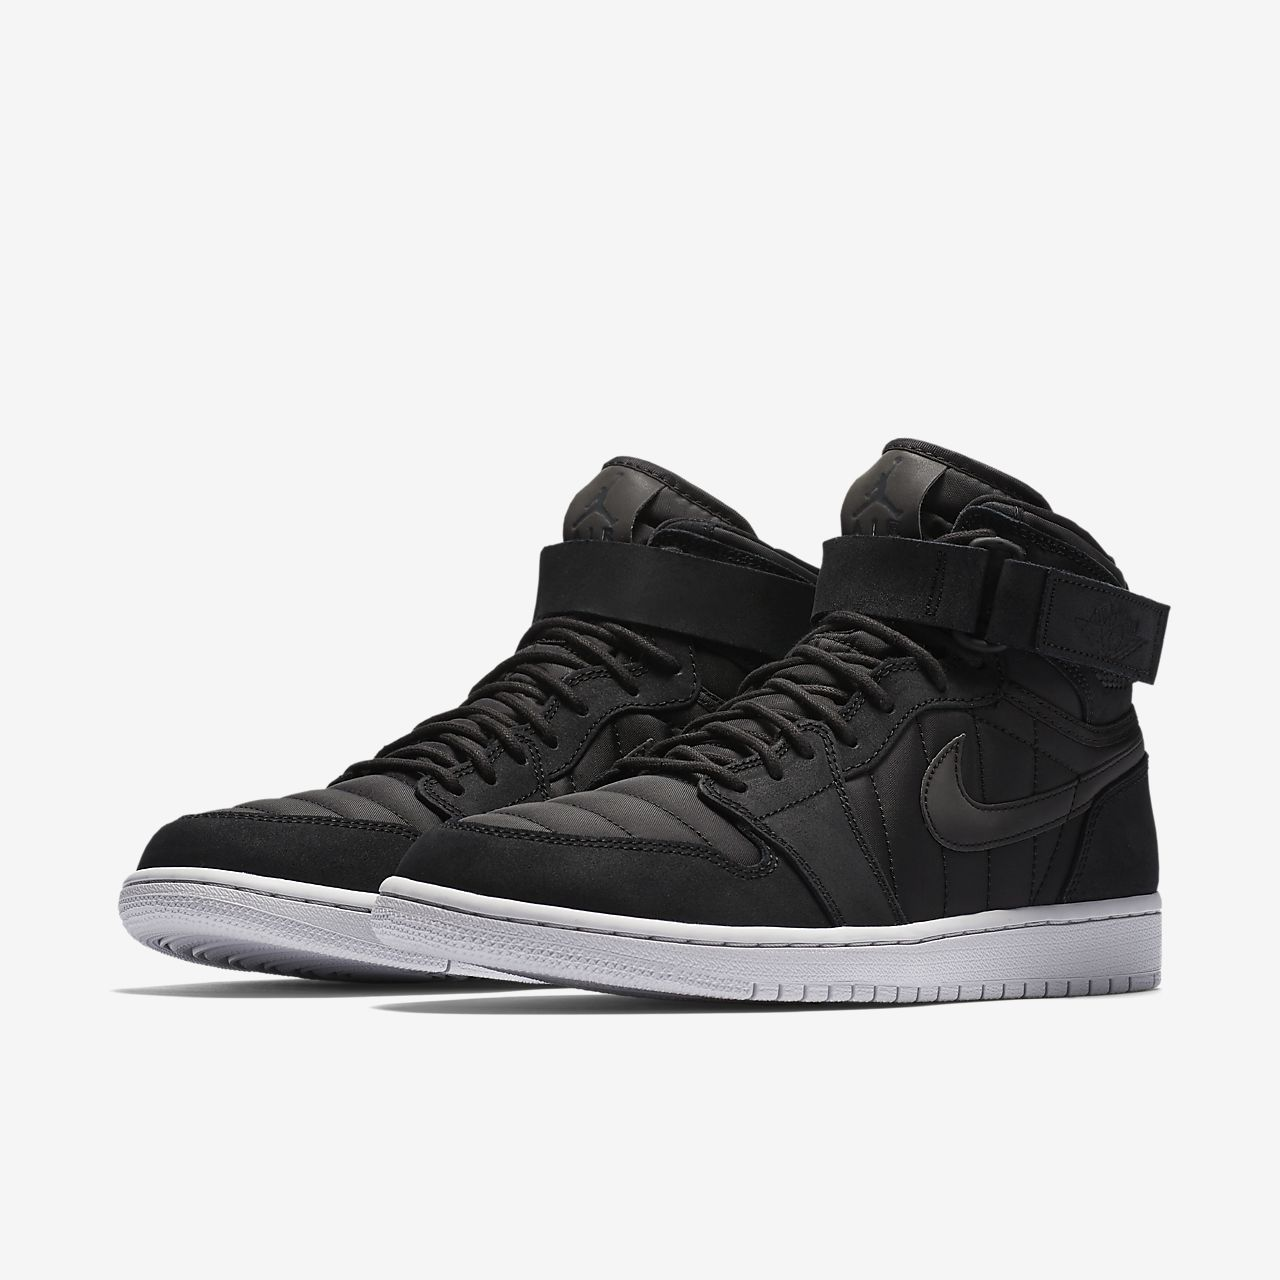 ... Jordan AJ 1 High Strap Men's Shoe